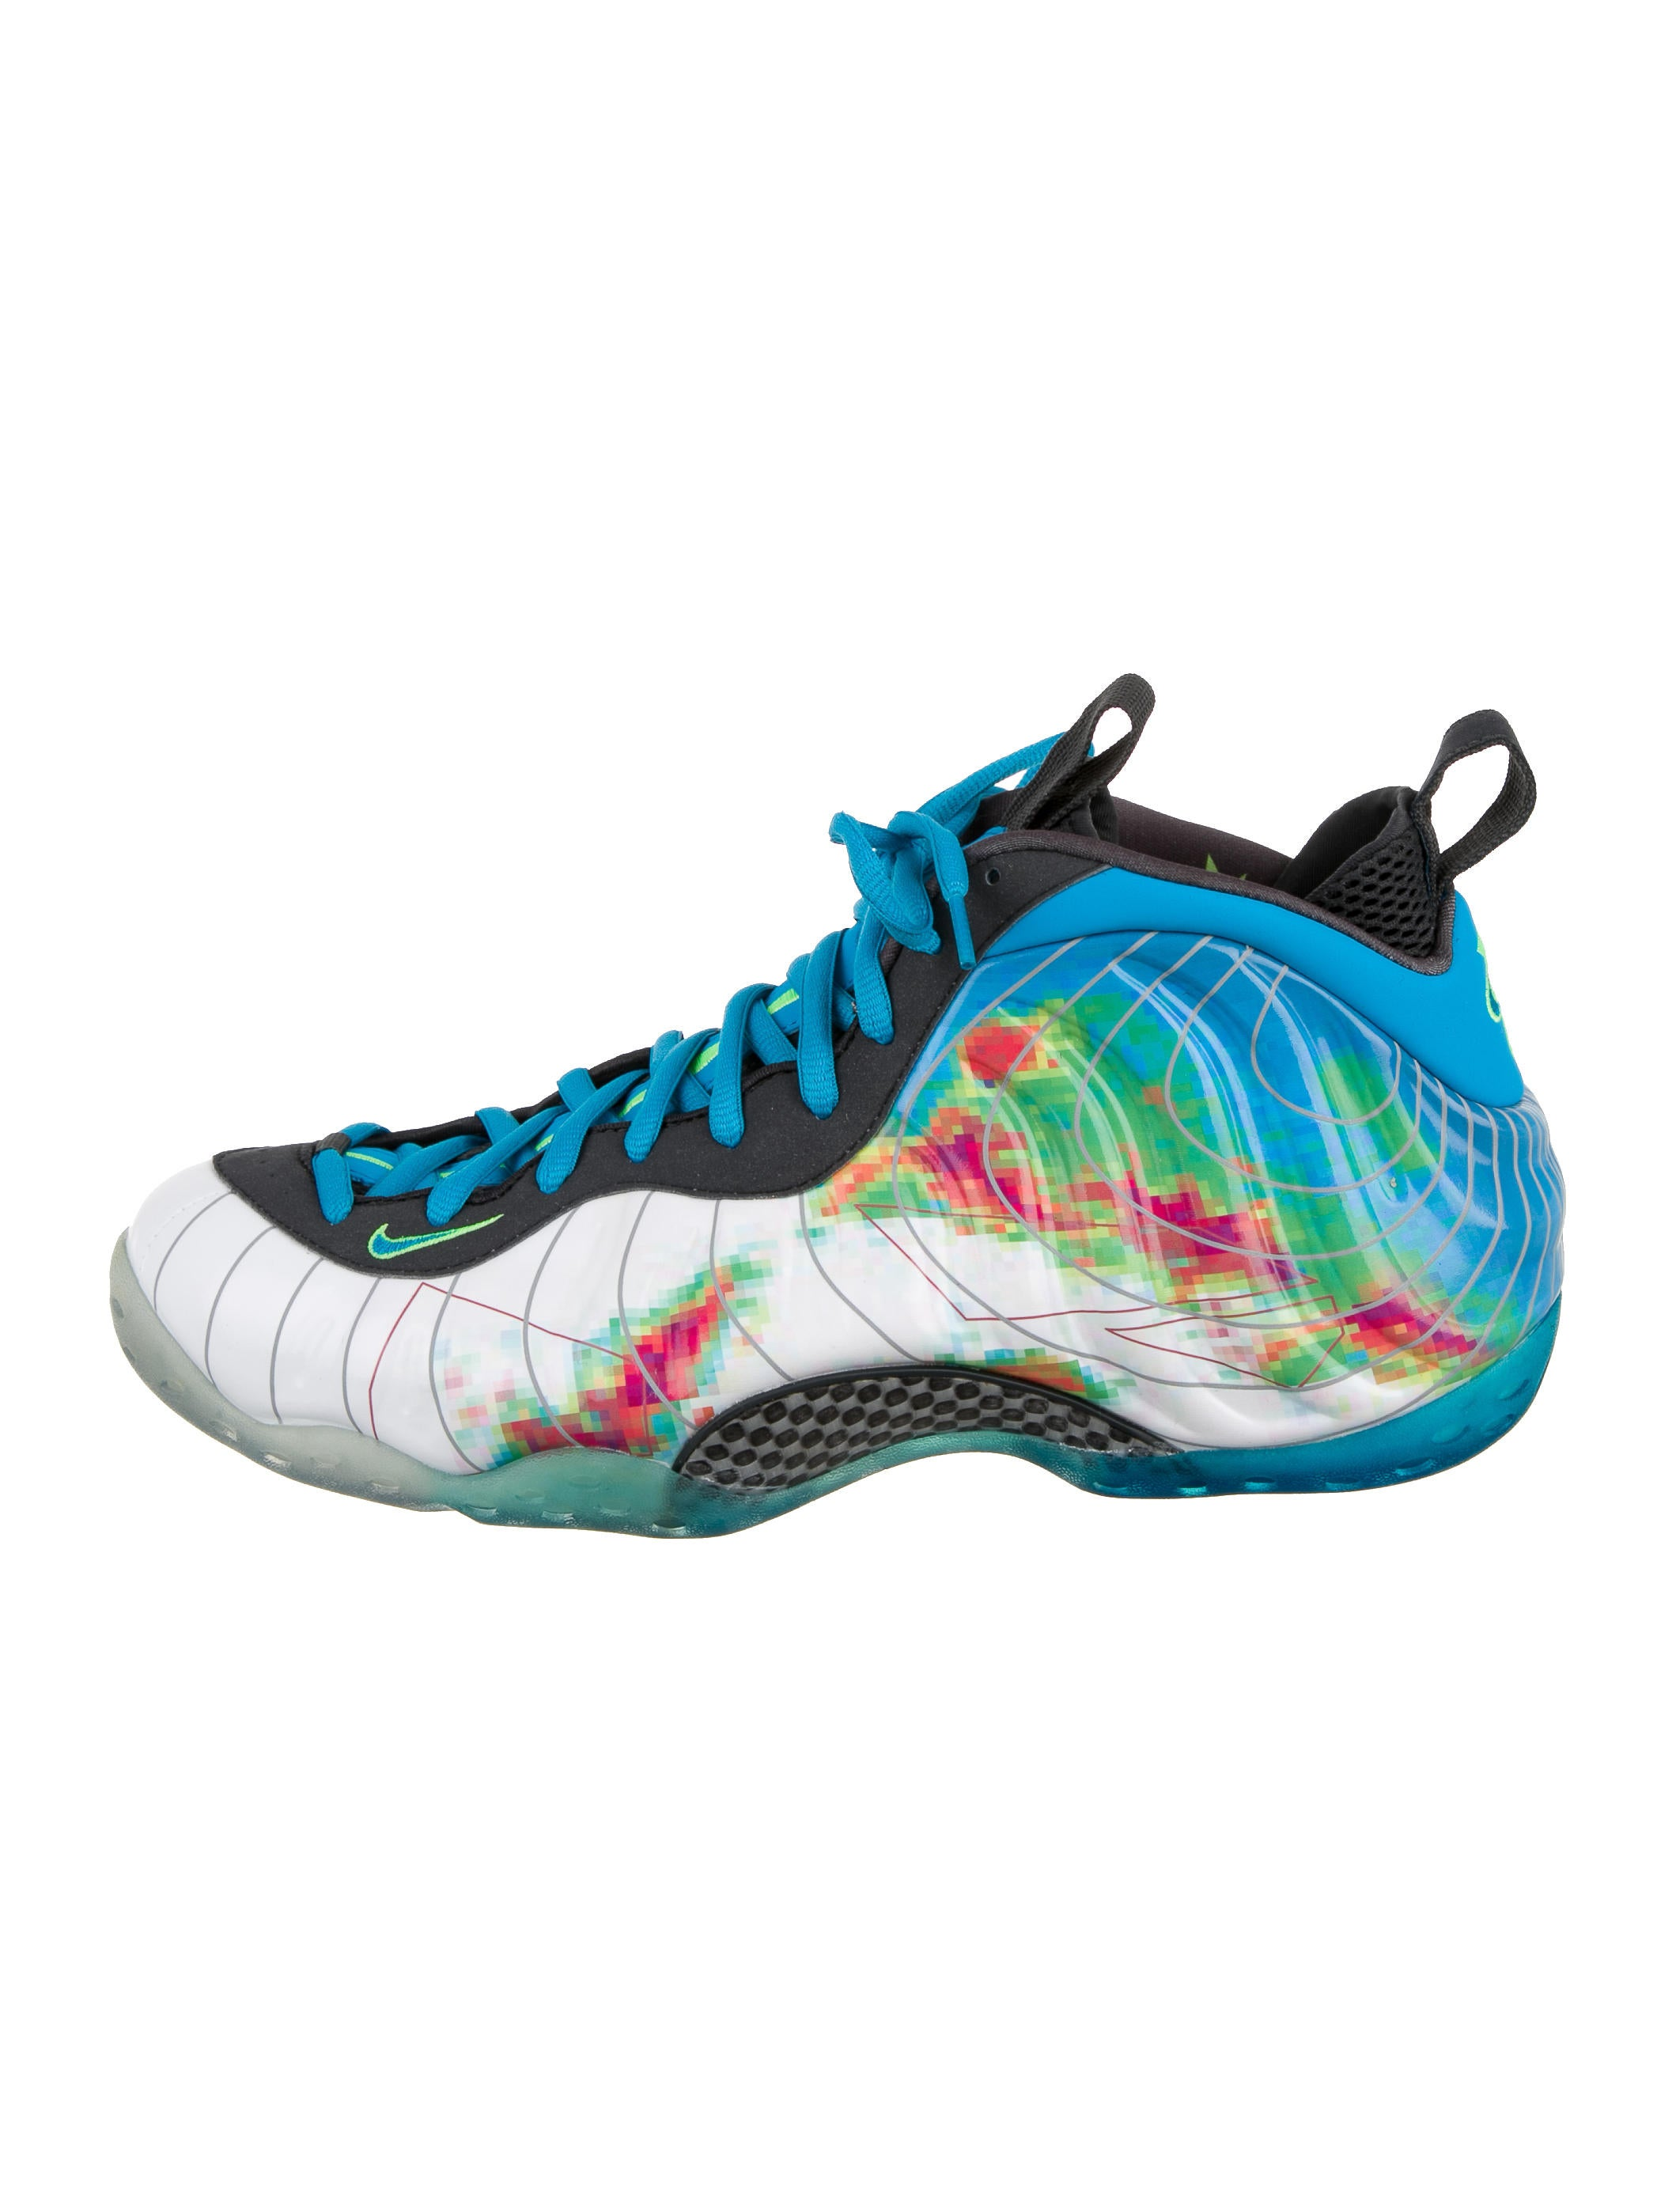 hot sale online 531a6 ca20a official nike foamposite weather first 973b5 cbb33